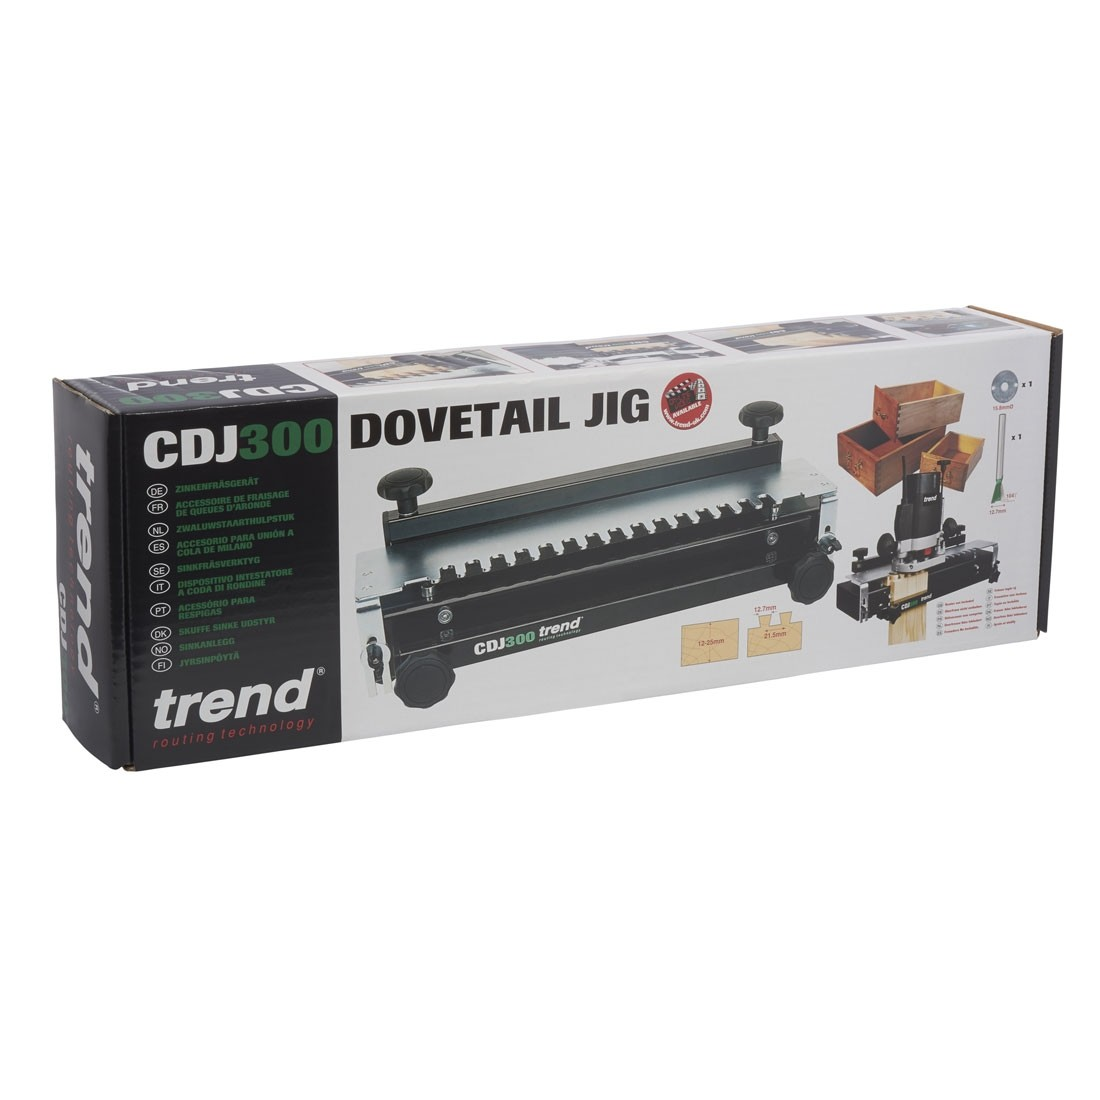 Dovetail Jig Reviews Uk